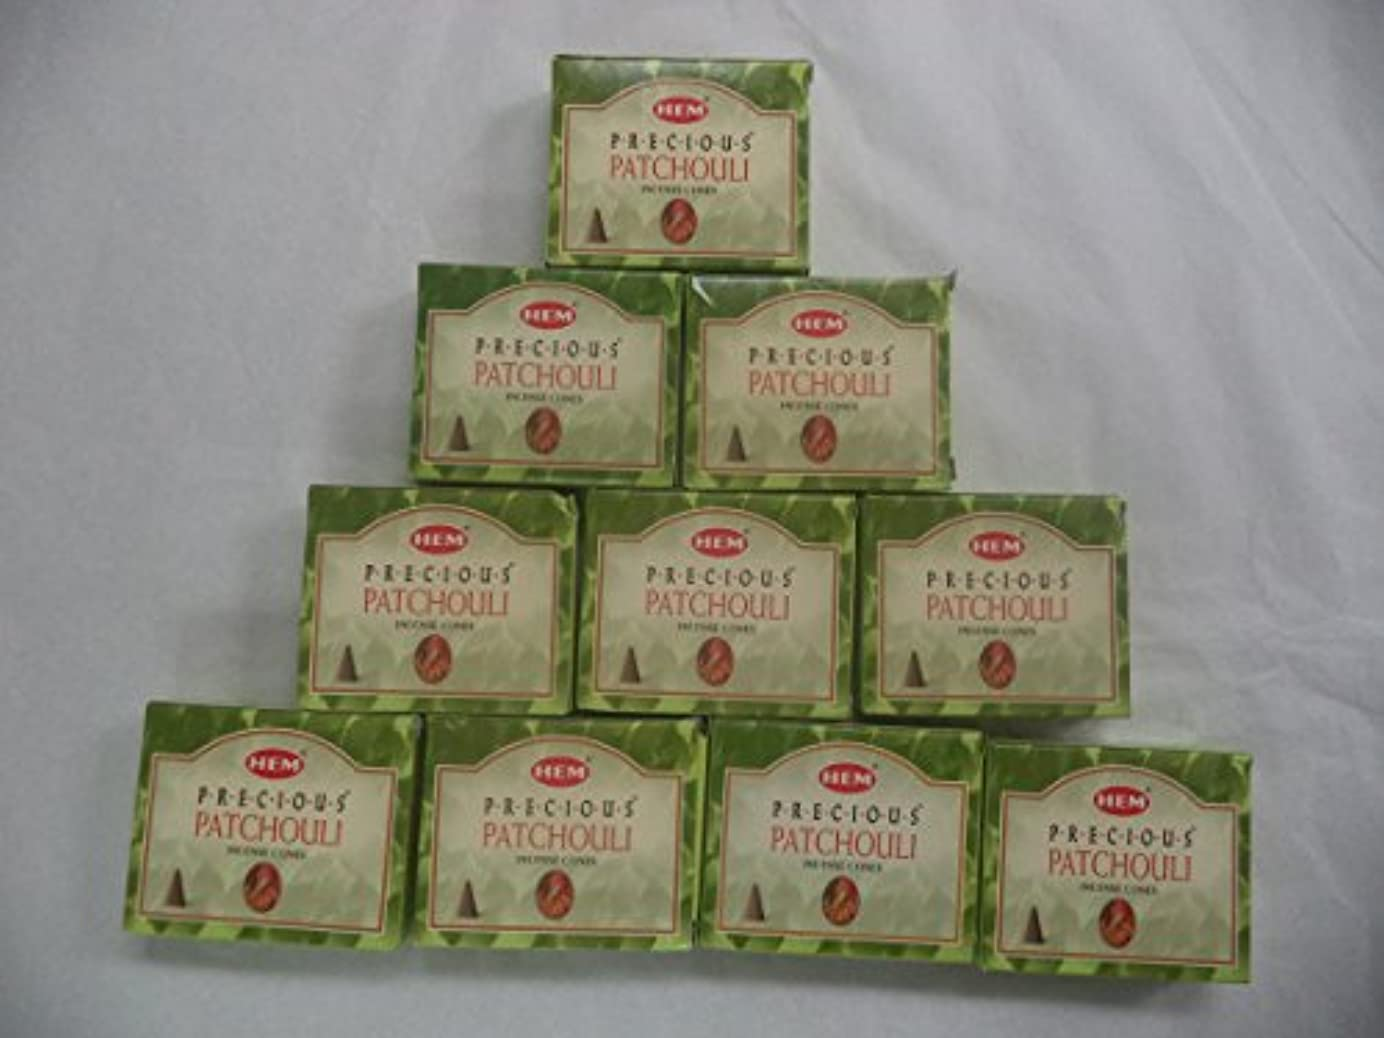 レジプログラム交差点HEM Incense Cones: Precious Patchouli - 10 Packs of 10 = 100 Cones by Hem